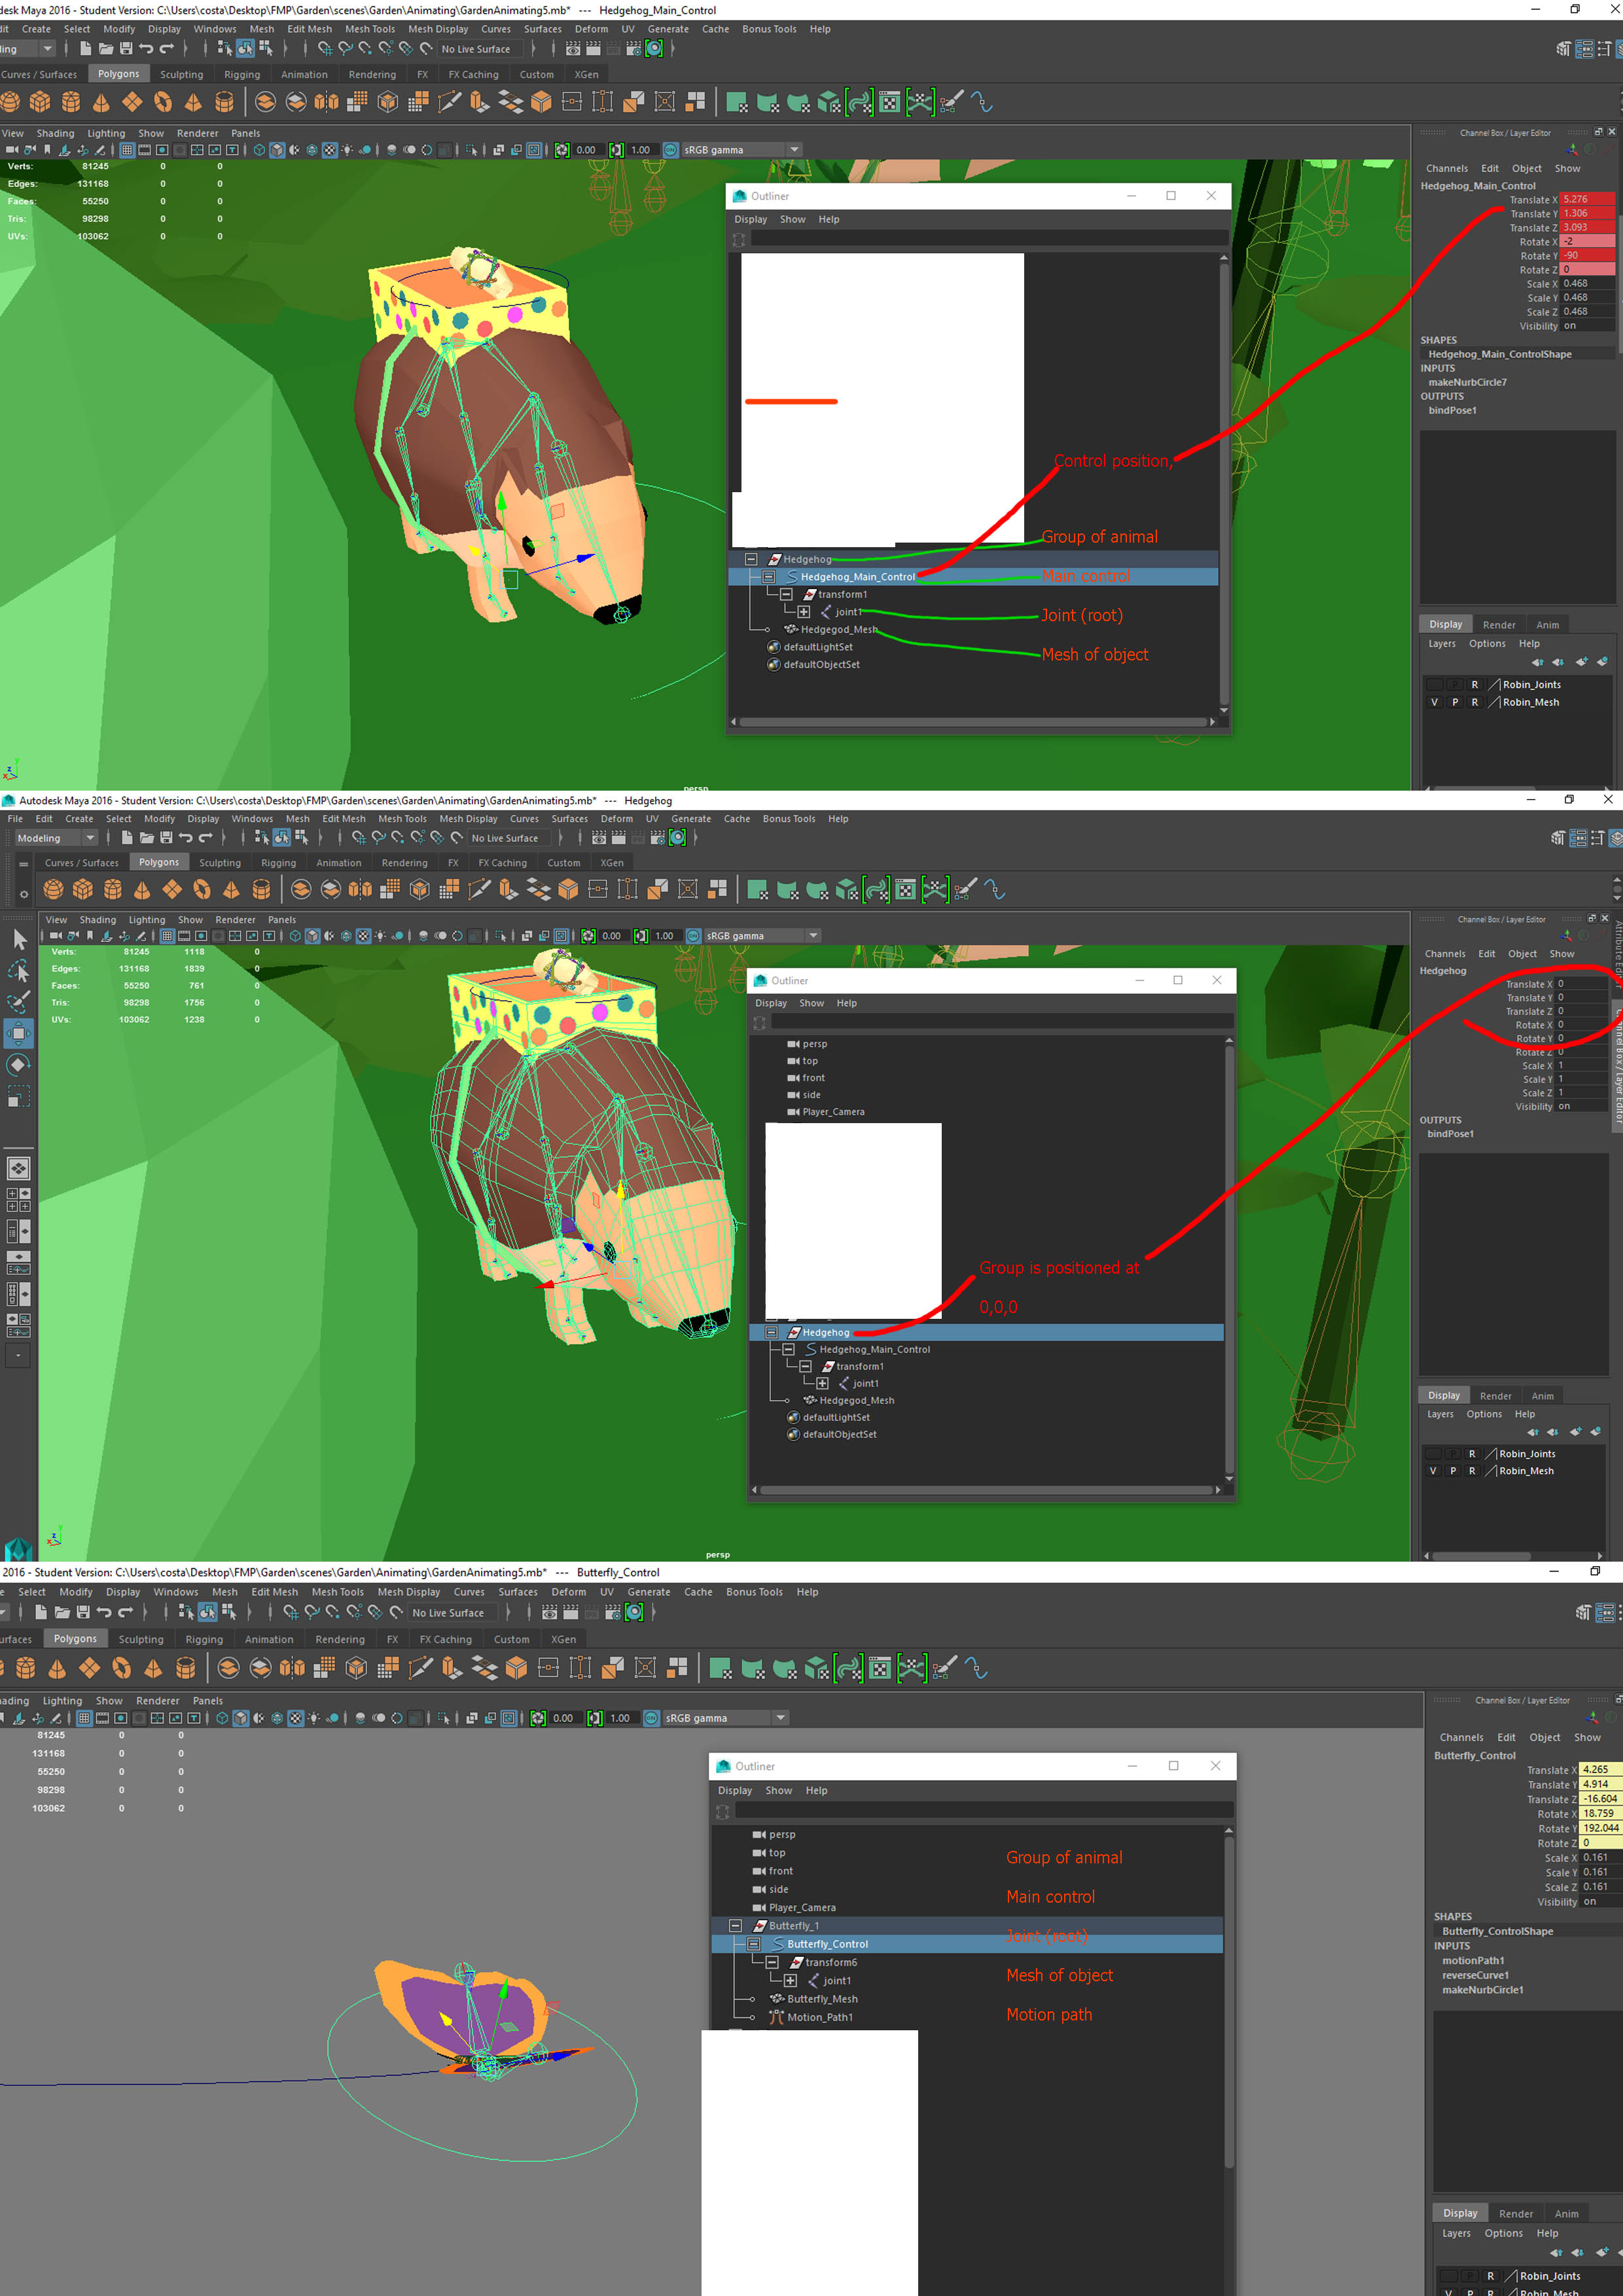 Unity is not placing my objects in the same position as in